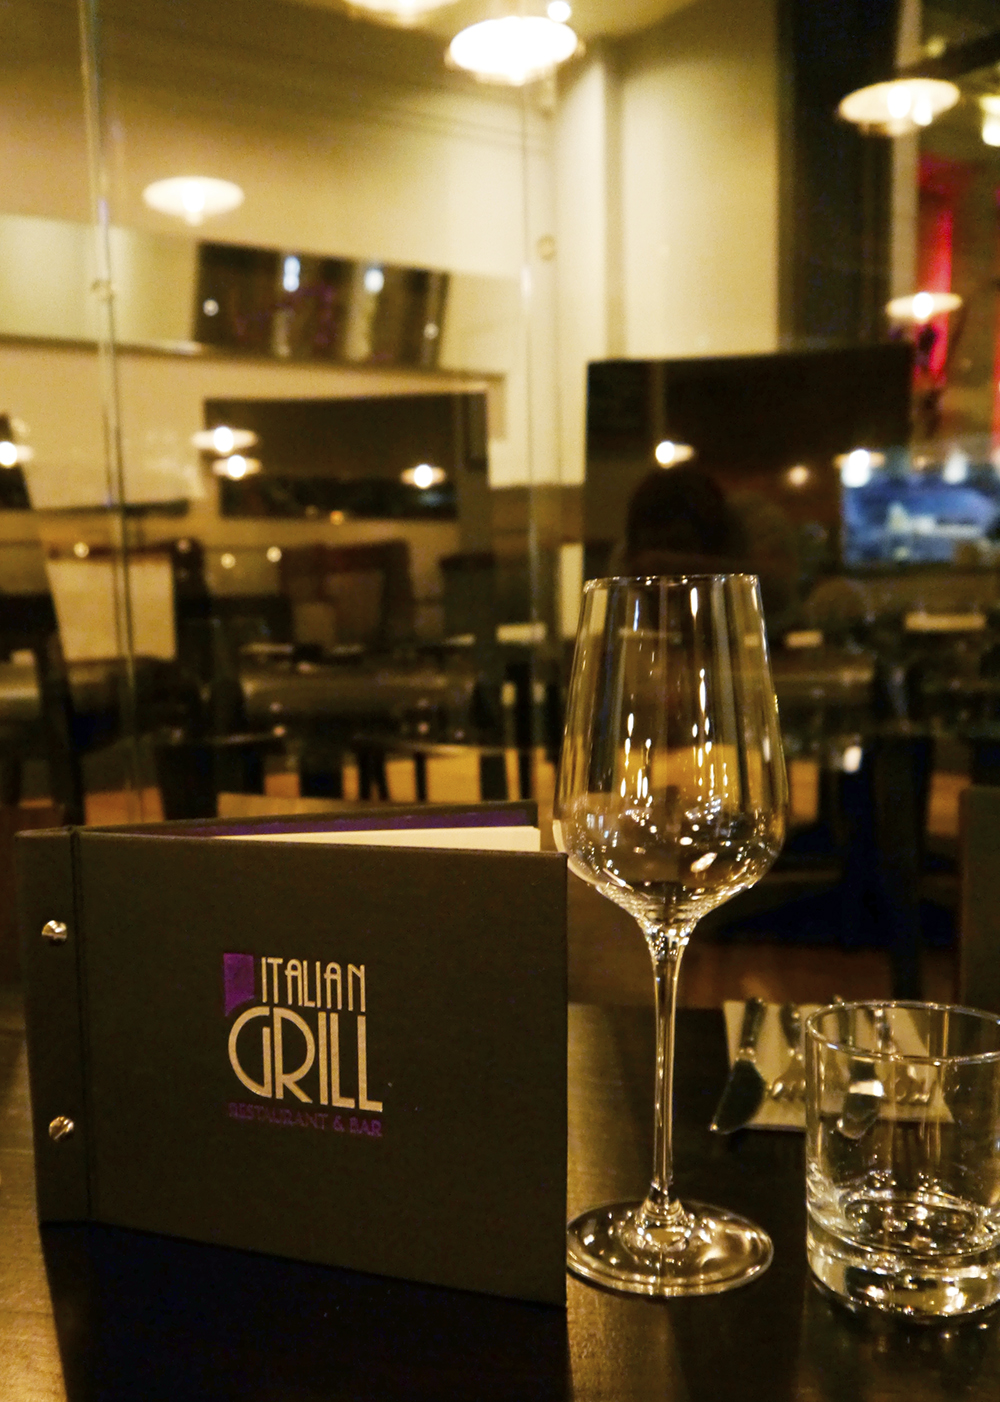 Review of Italian Grill restaurant in Dundee for special dietary requirements